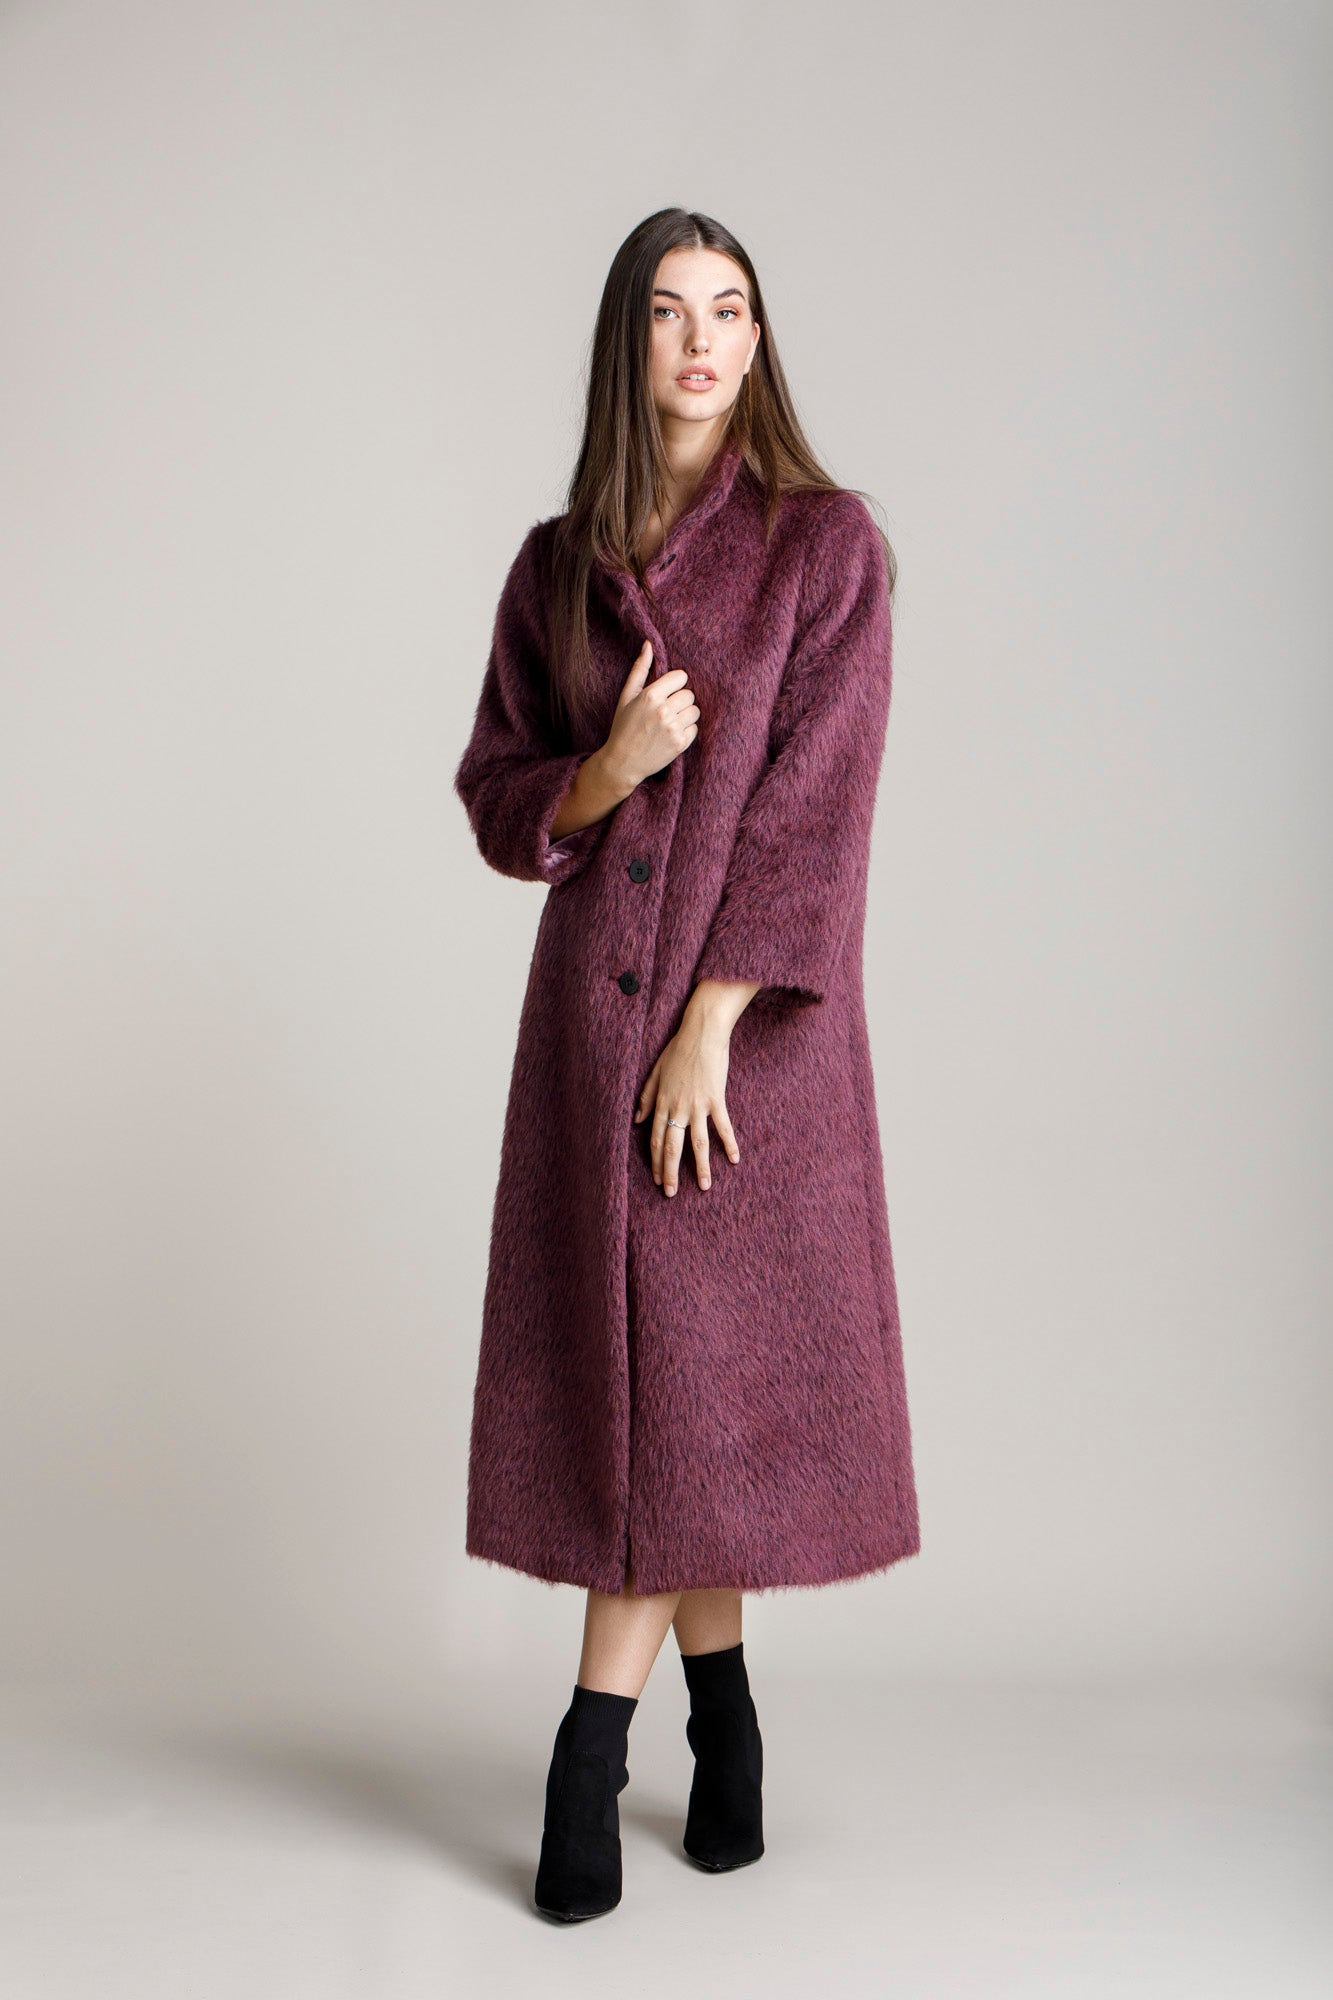 Rose High Neck Long Coat 5284